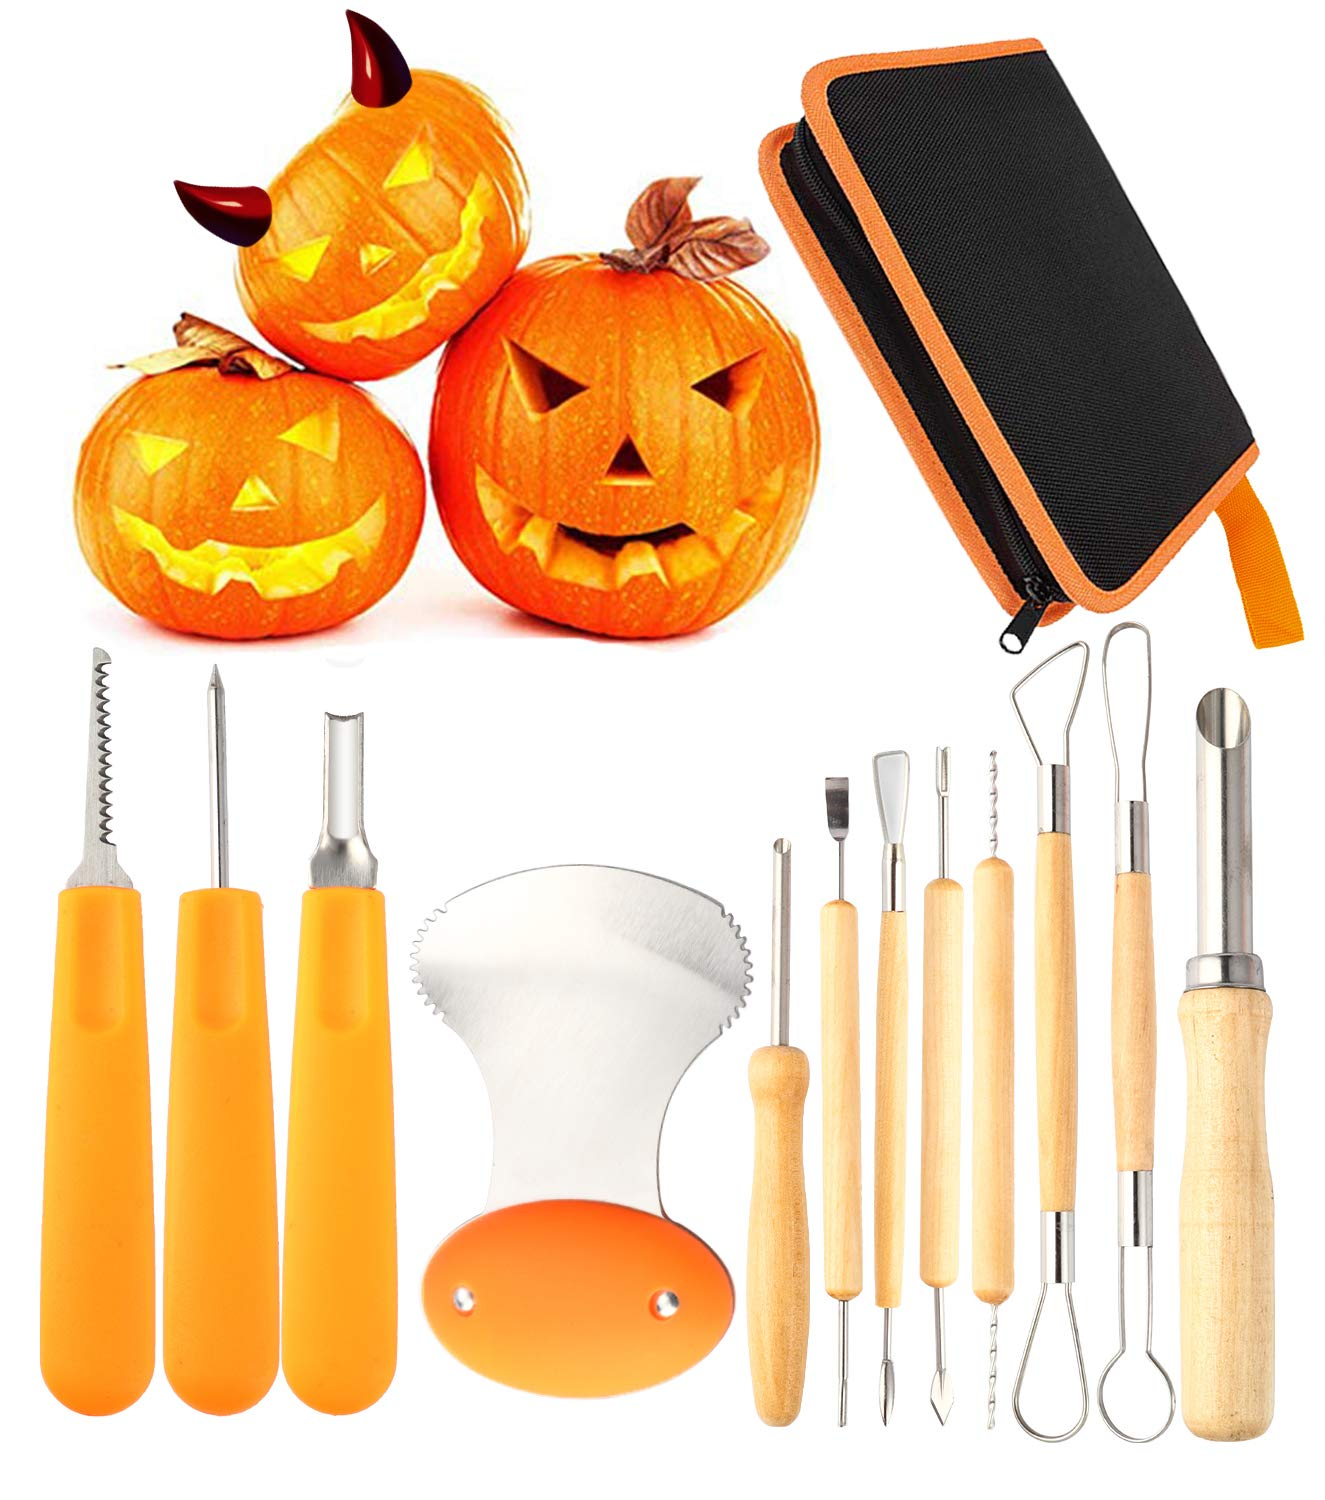 12 Pieces Professional Pumpkin Carving Tool Kit Heavy Duty Stainless Steel Tool Set with Storage Carrying Case Used As a Carving Knife for Pumpkin Halloween Decoration by Diravo